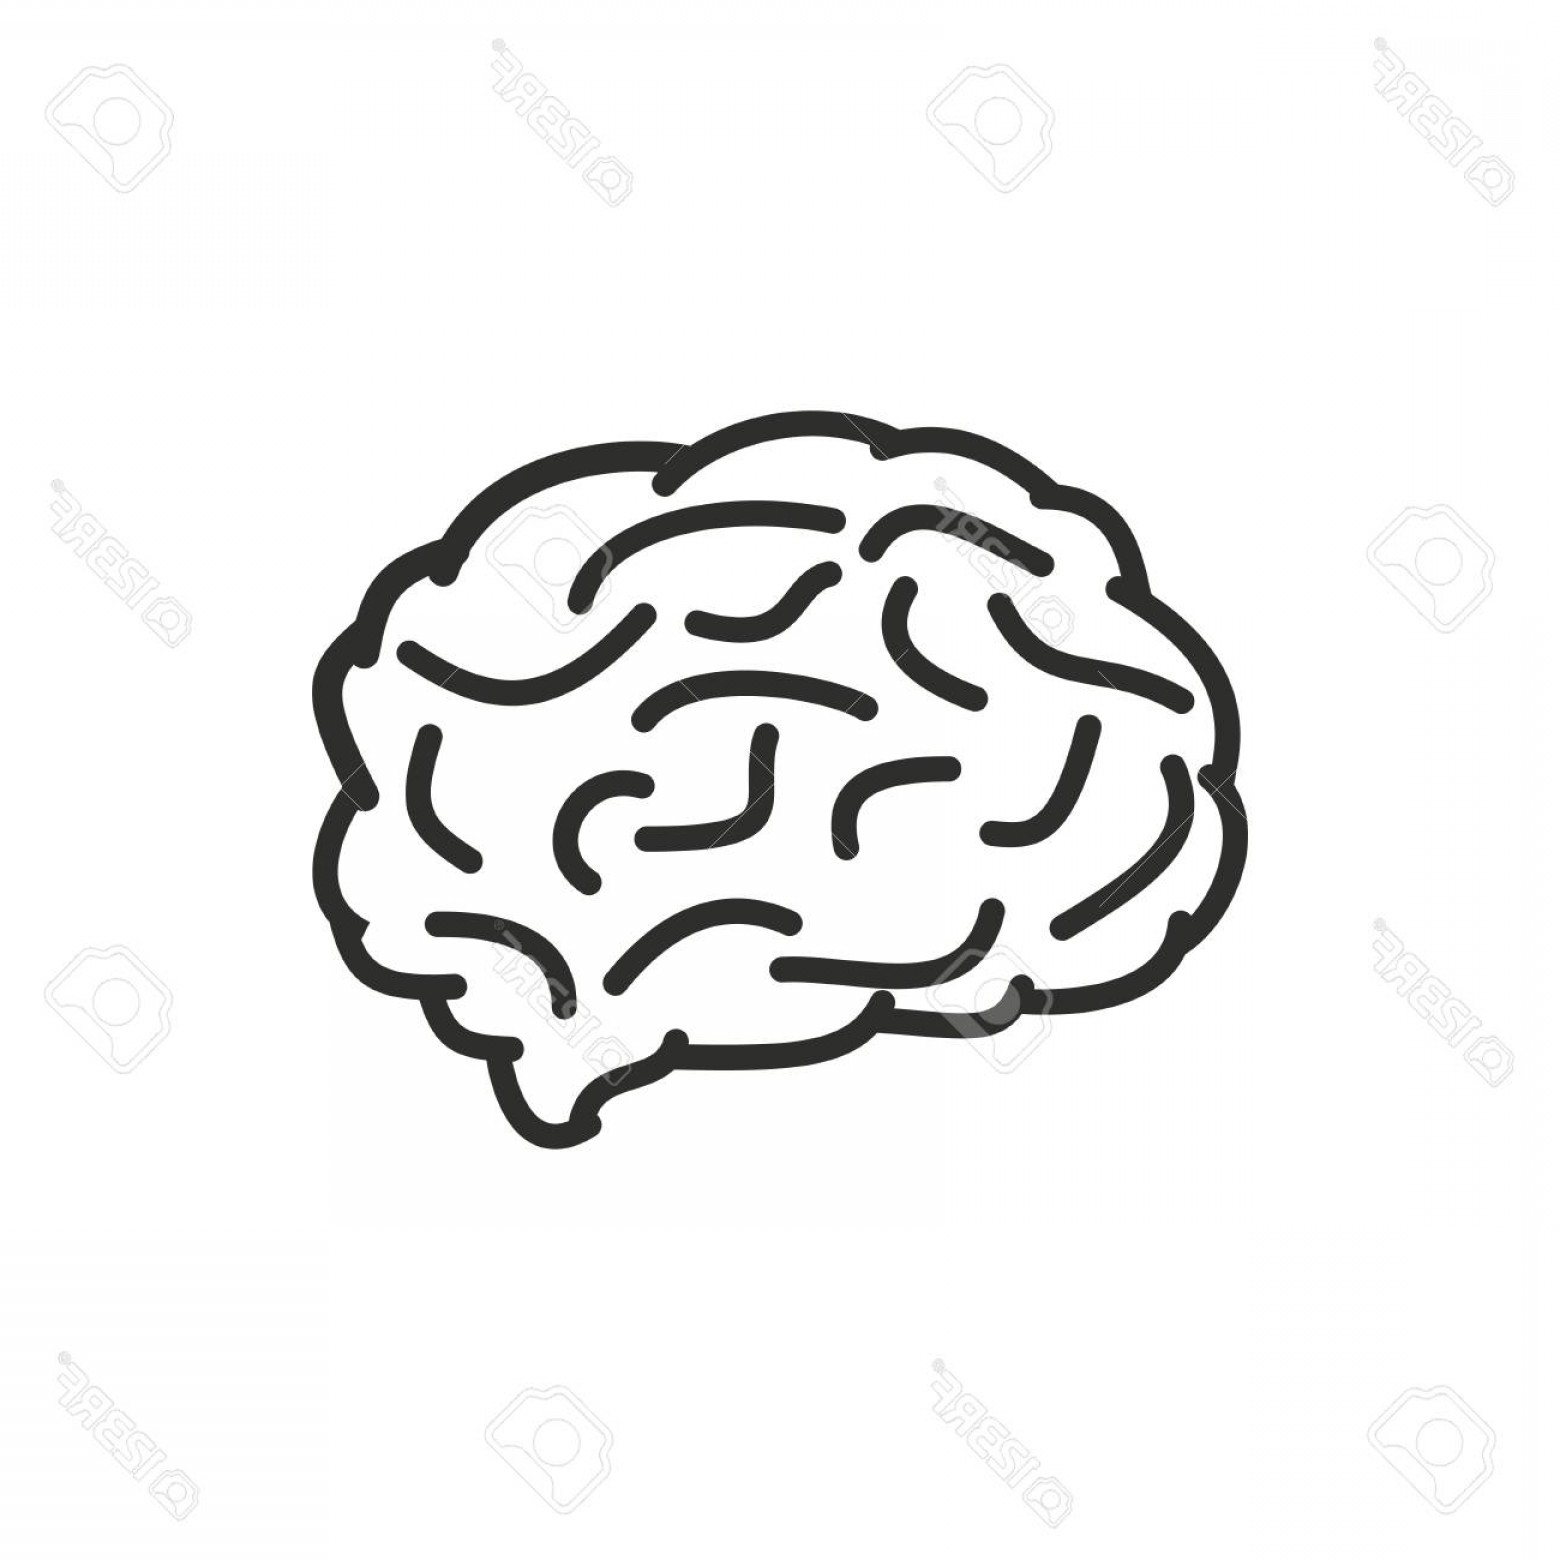 Brain Vector Art: Photostock Vector Brain Vector Icon Black Illustration Isolated On White Background For Graphic And Web Design